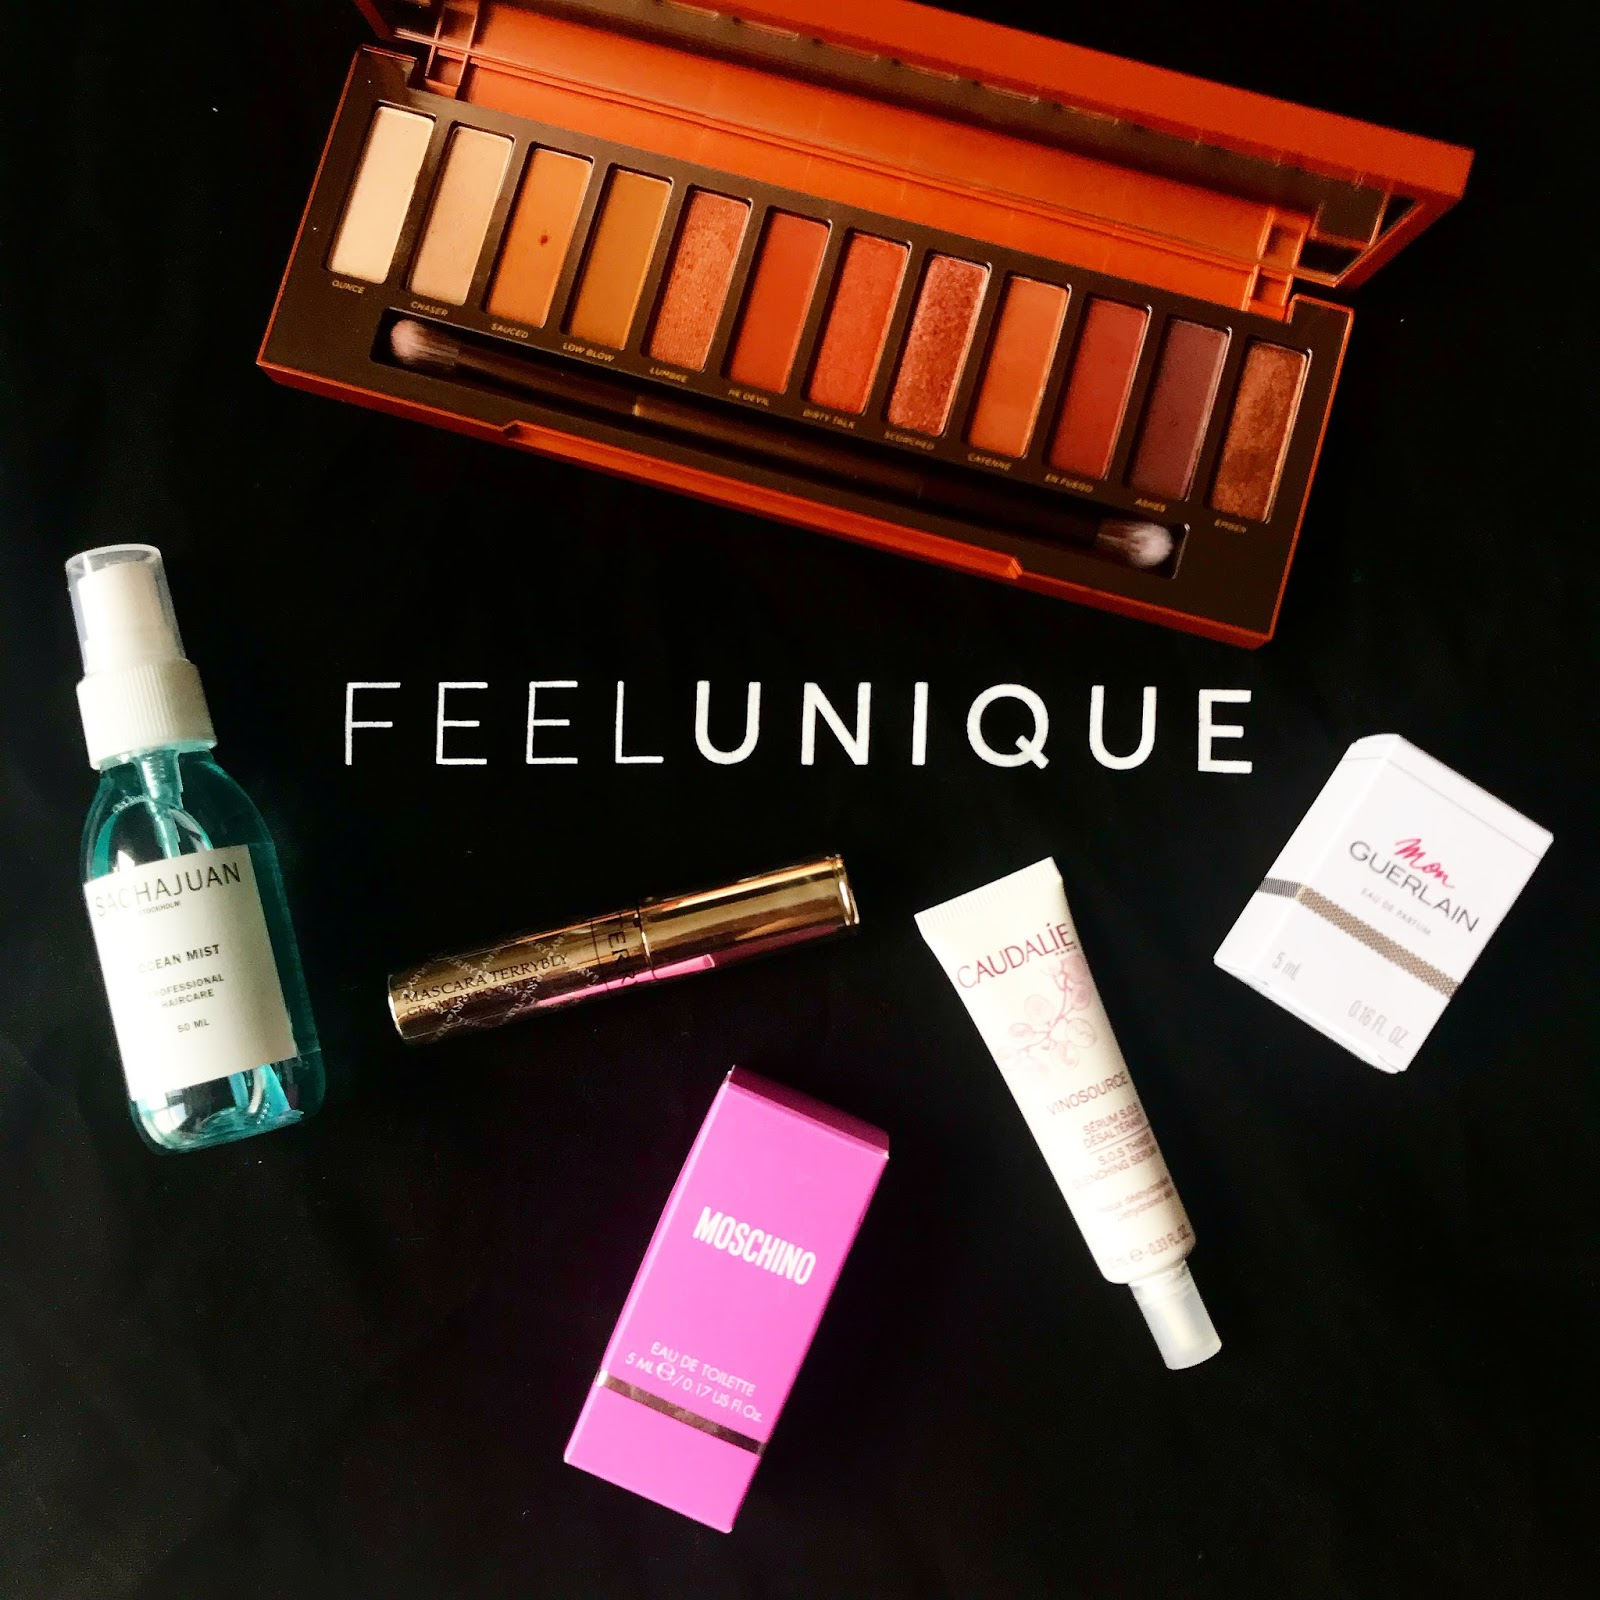 THE FEELUNIQUE #SEASONTOSHINE POP UP | THE URBAN DECAY NAKED HEAT PALETTE